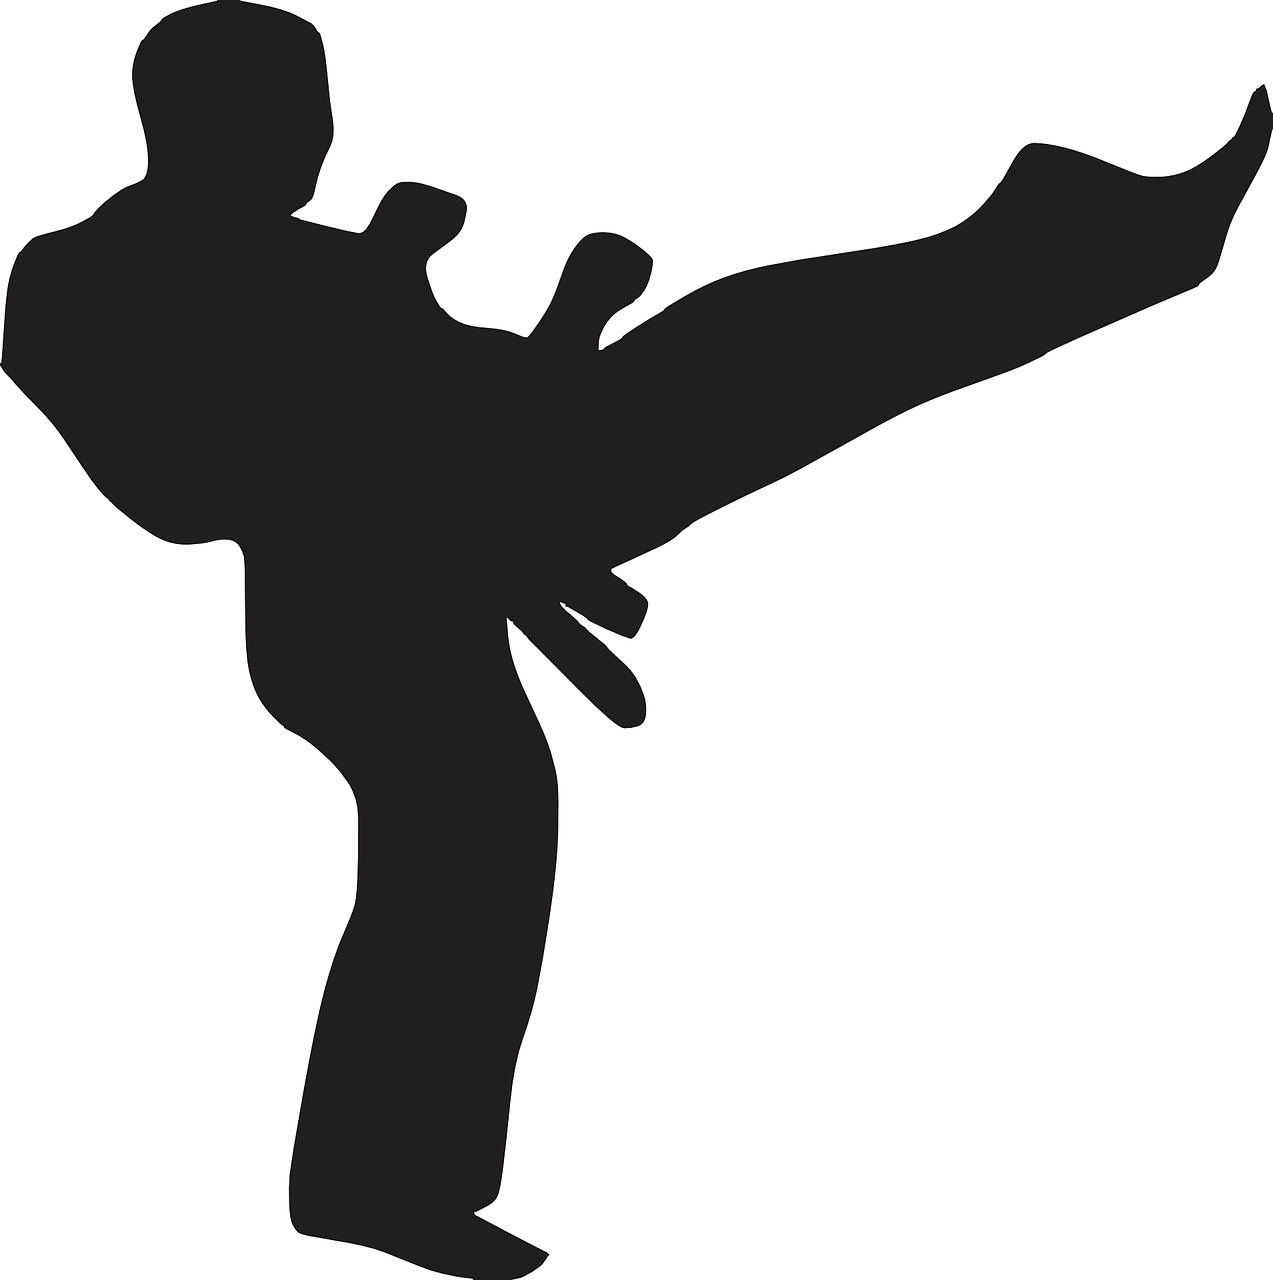 List of The Best Martial Arts To Get in Shape | The Hobbyts